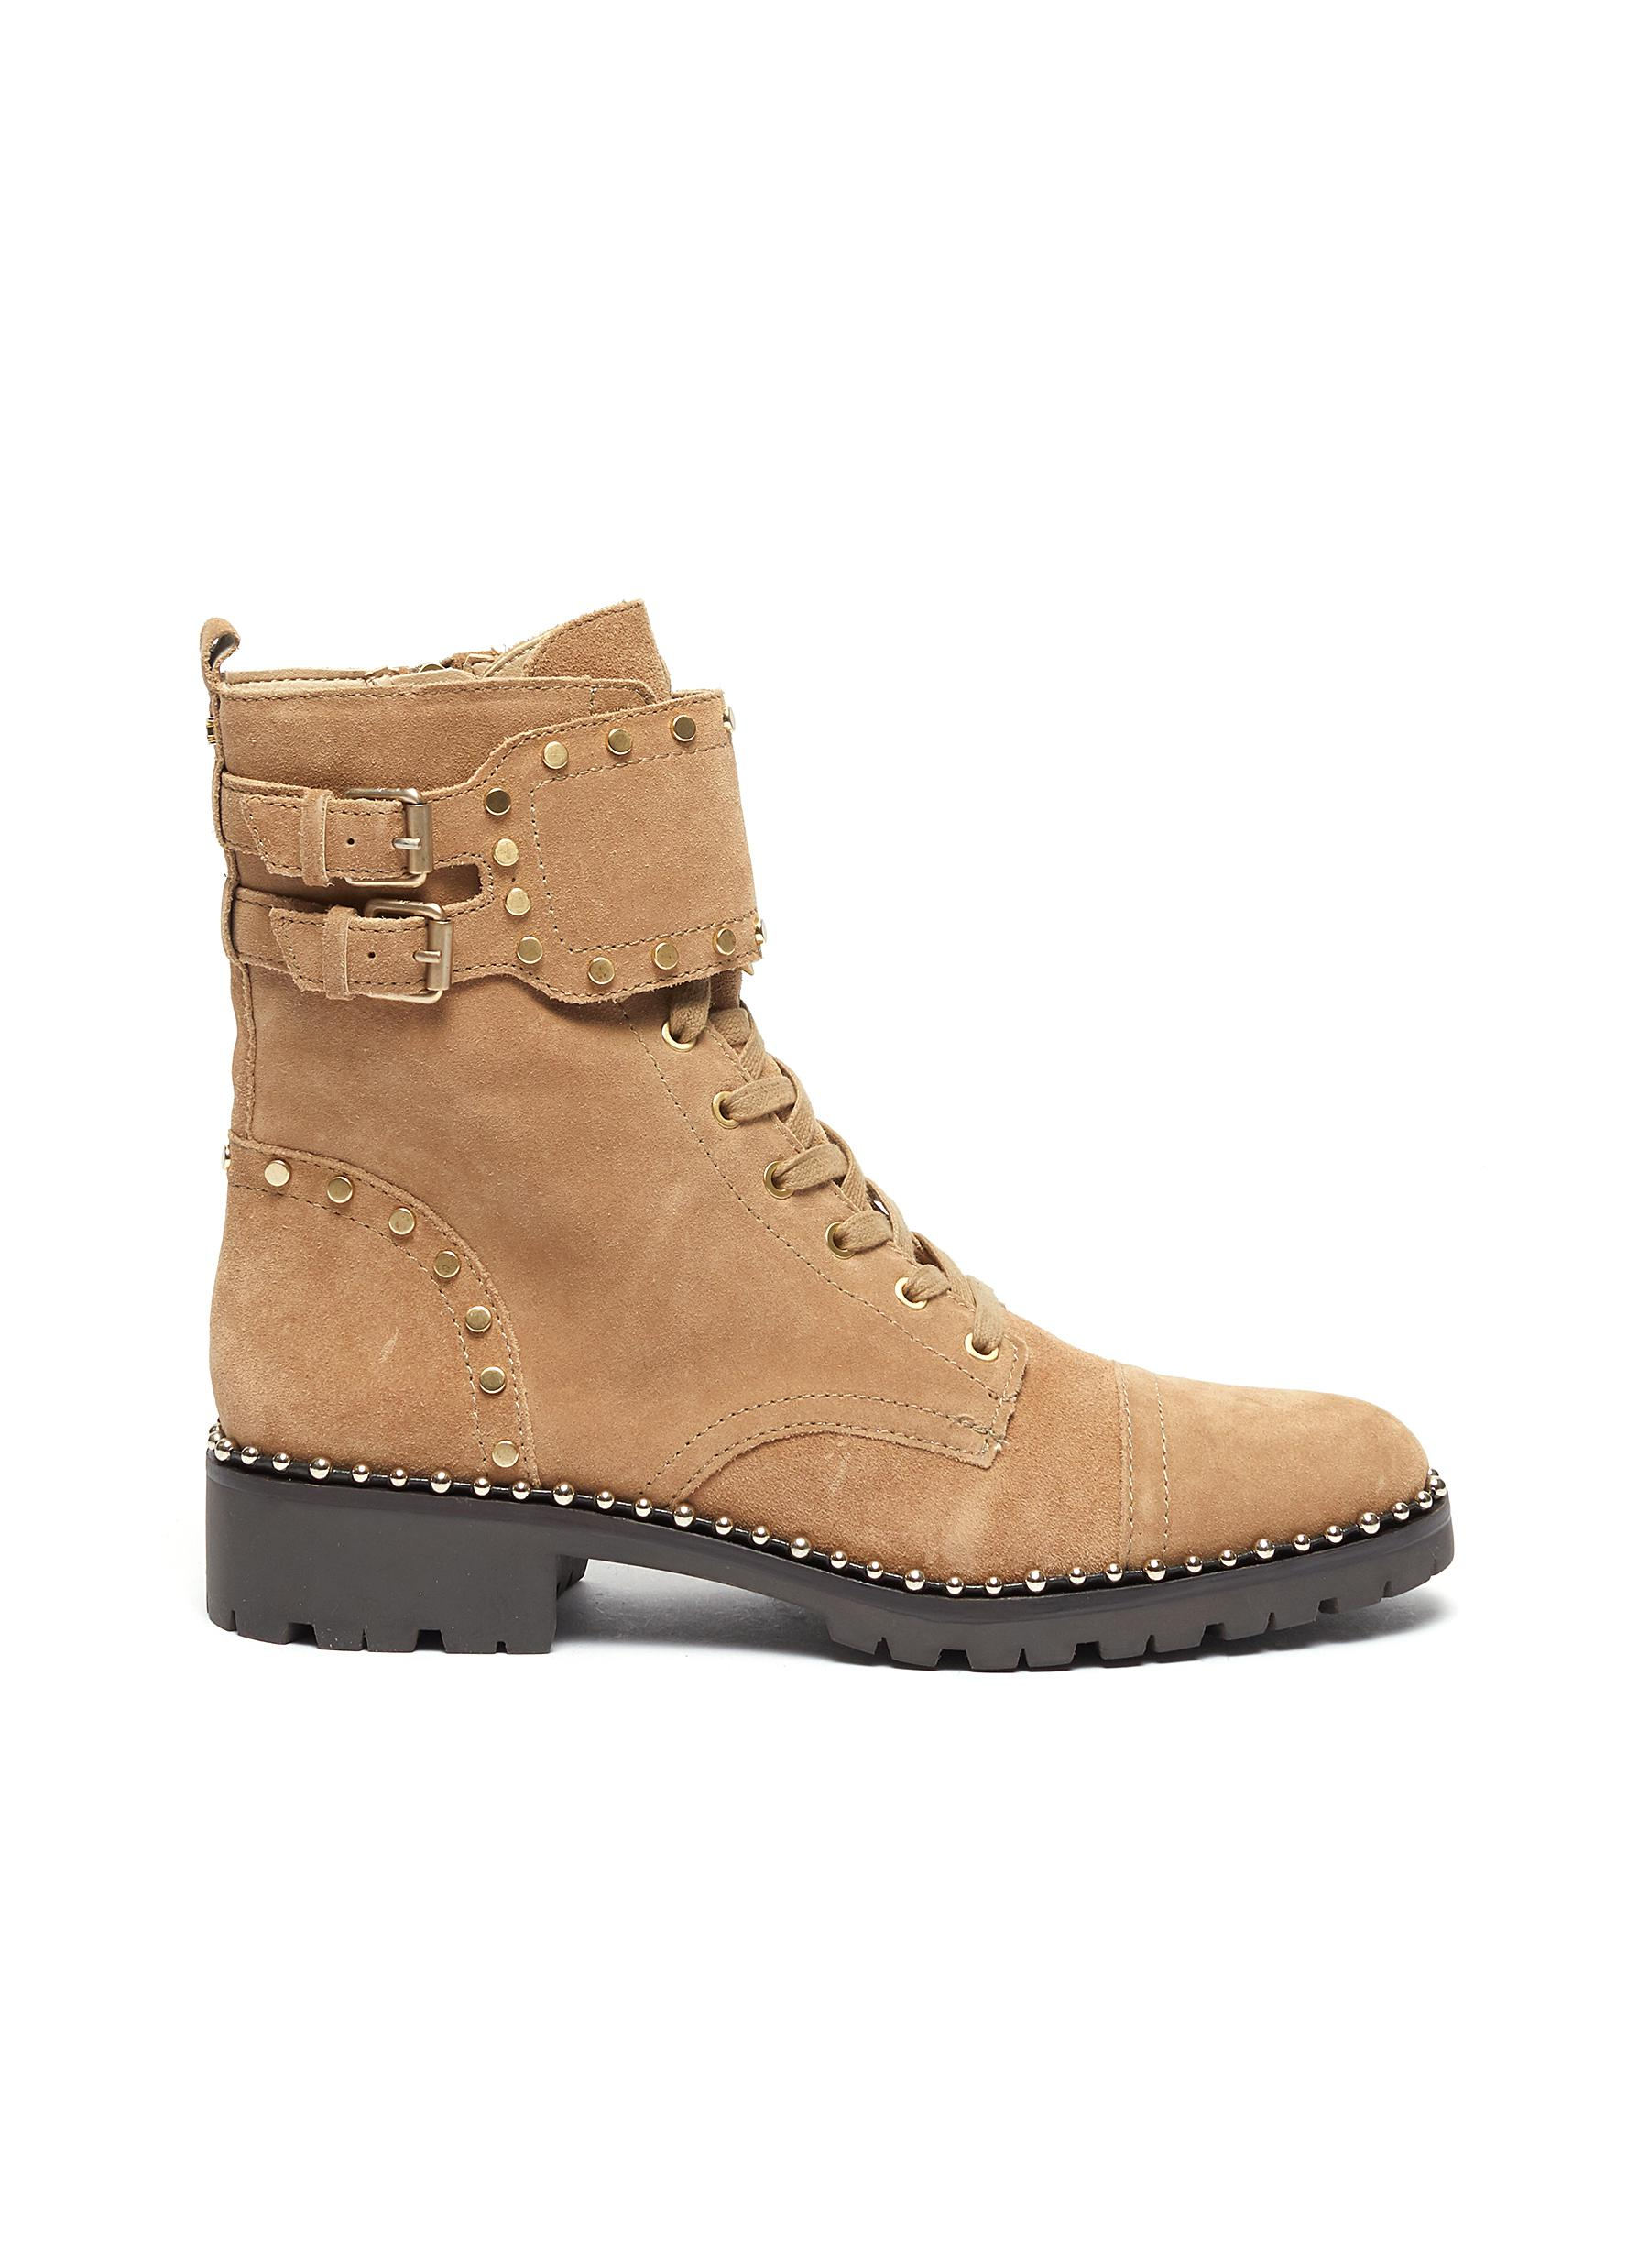 Jennifer buckled stud suede combat boots by Sam Edelman